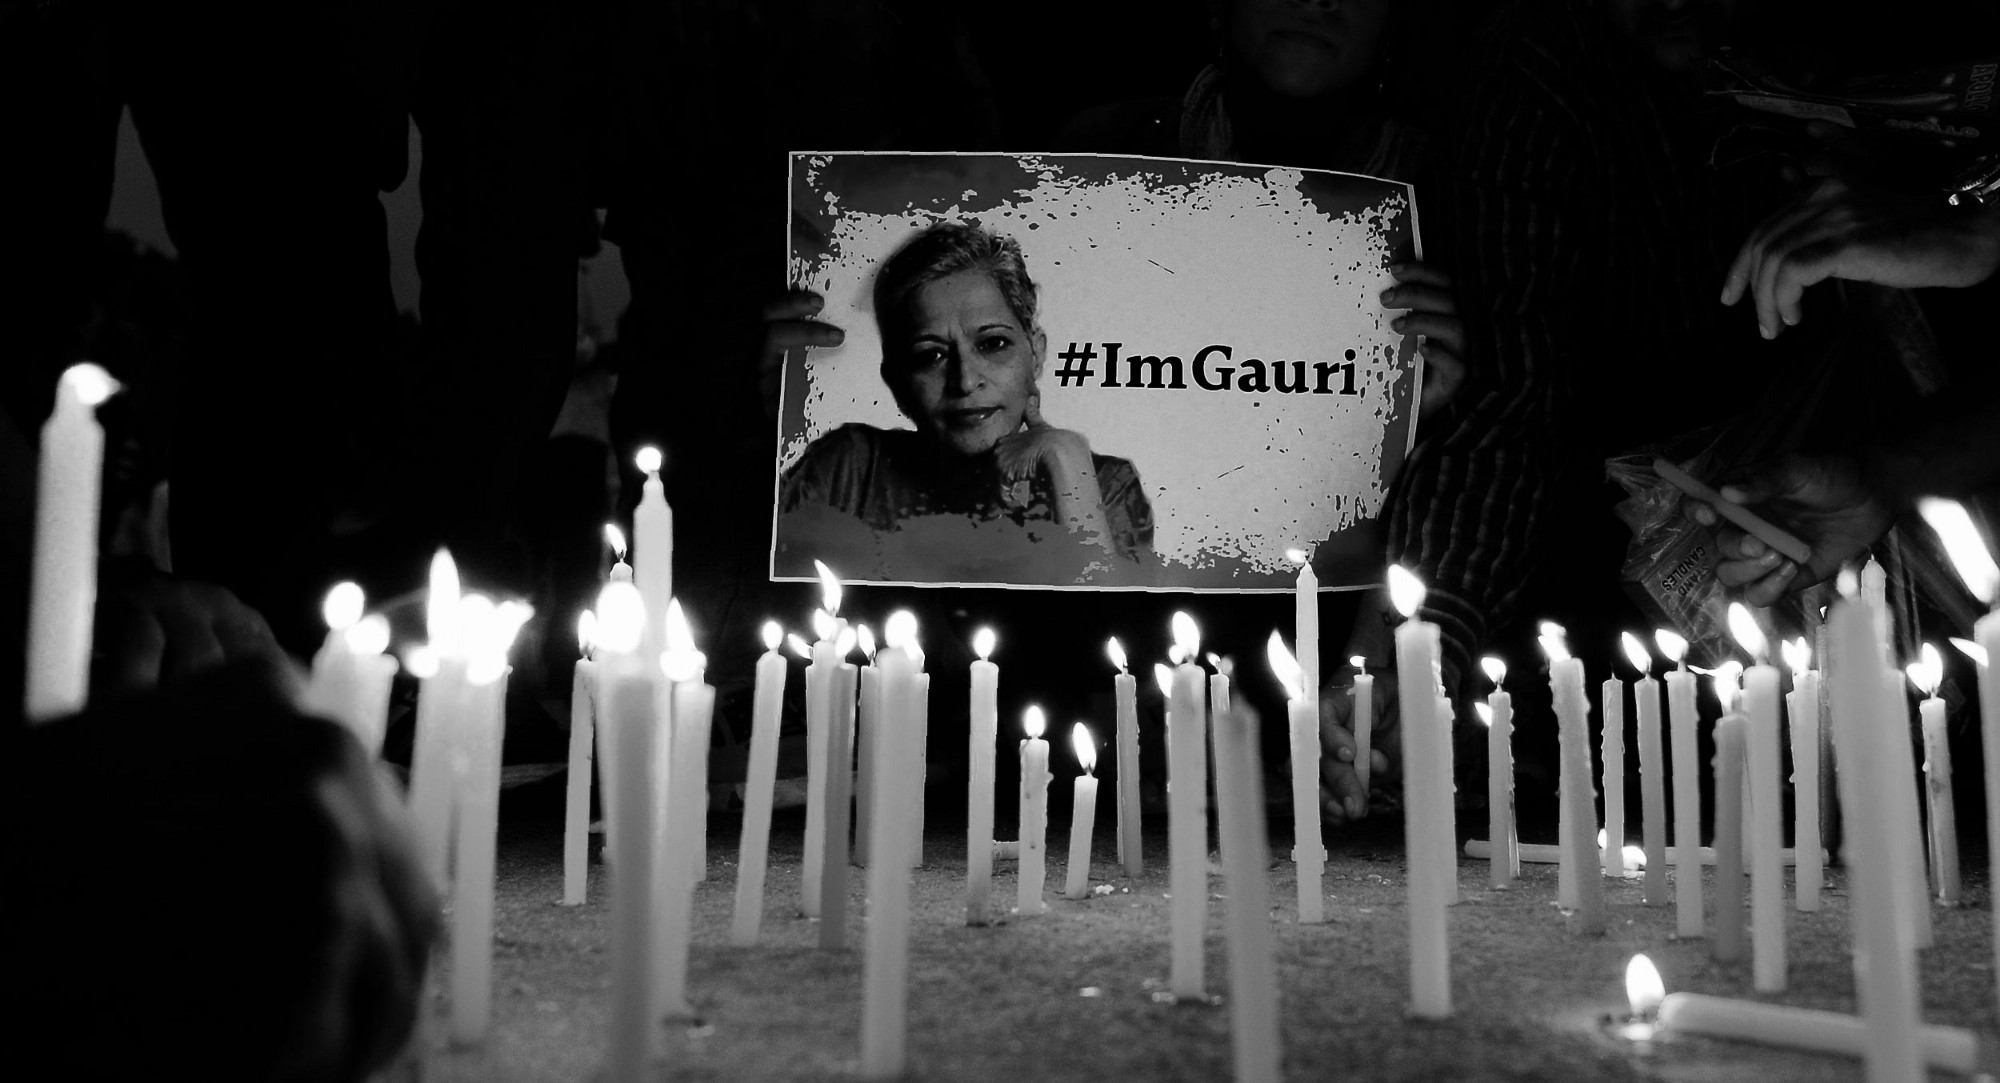 Media fraternity seeks speedy inquiry into Gauri Lankesh's killing